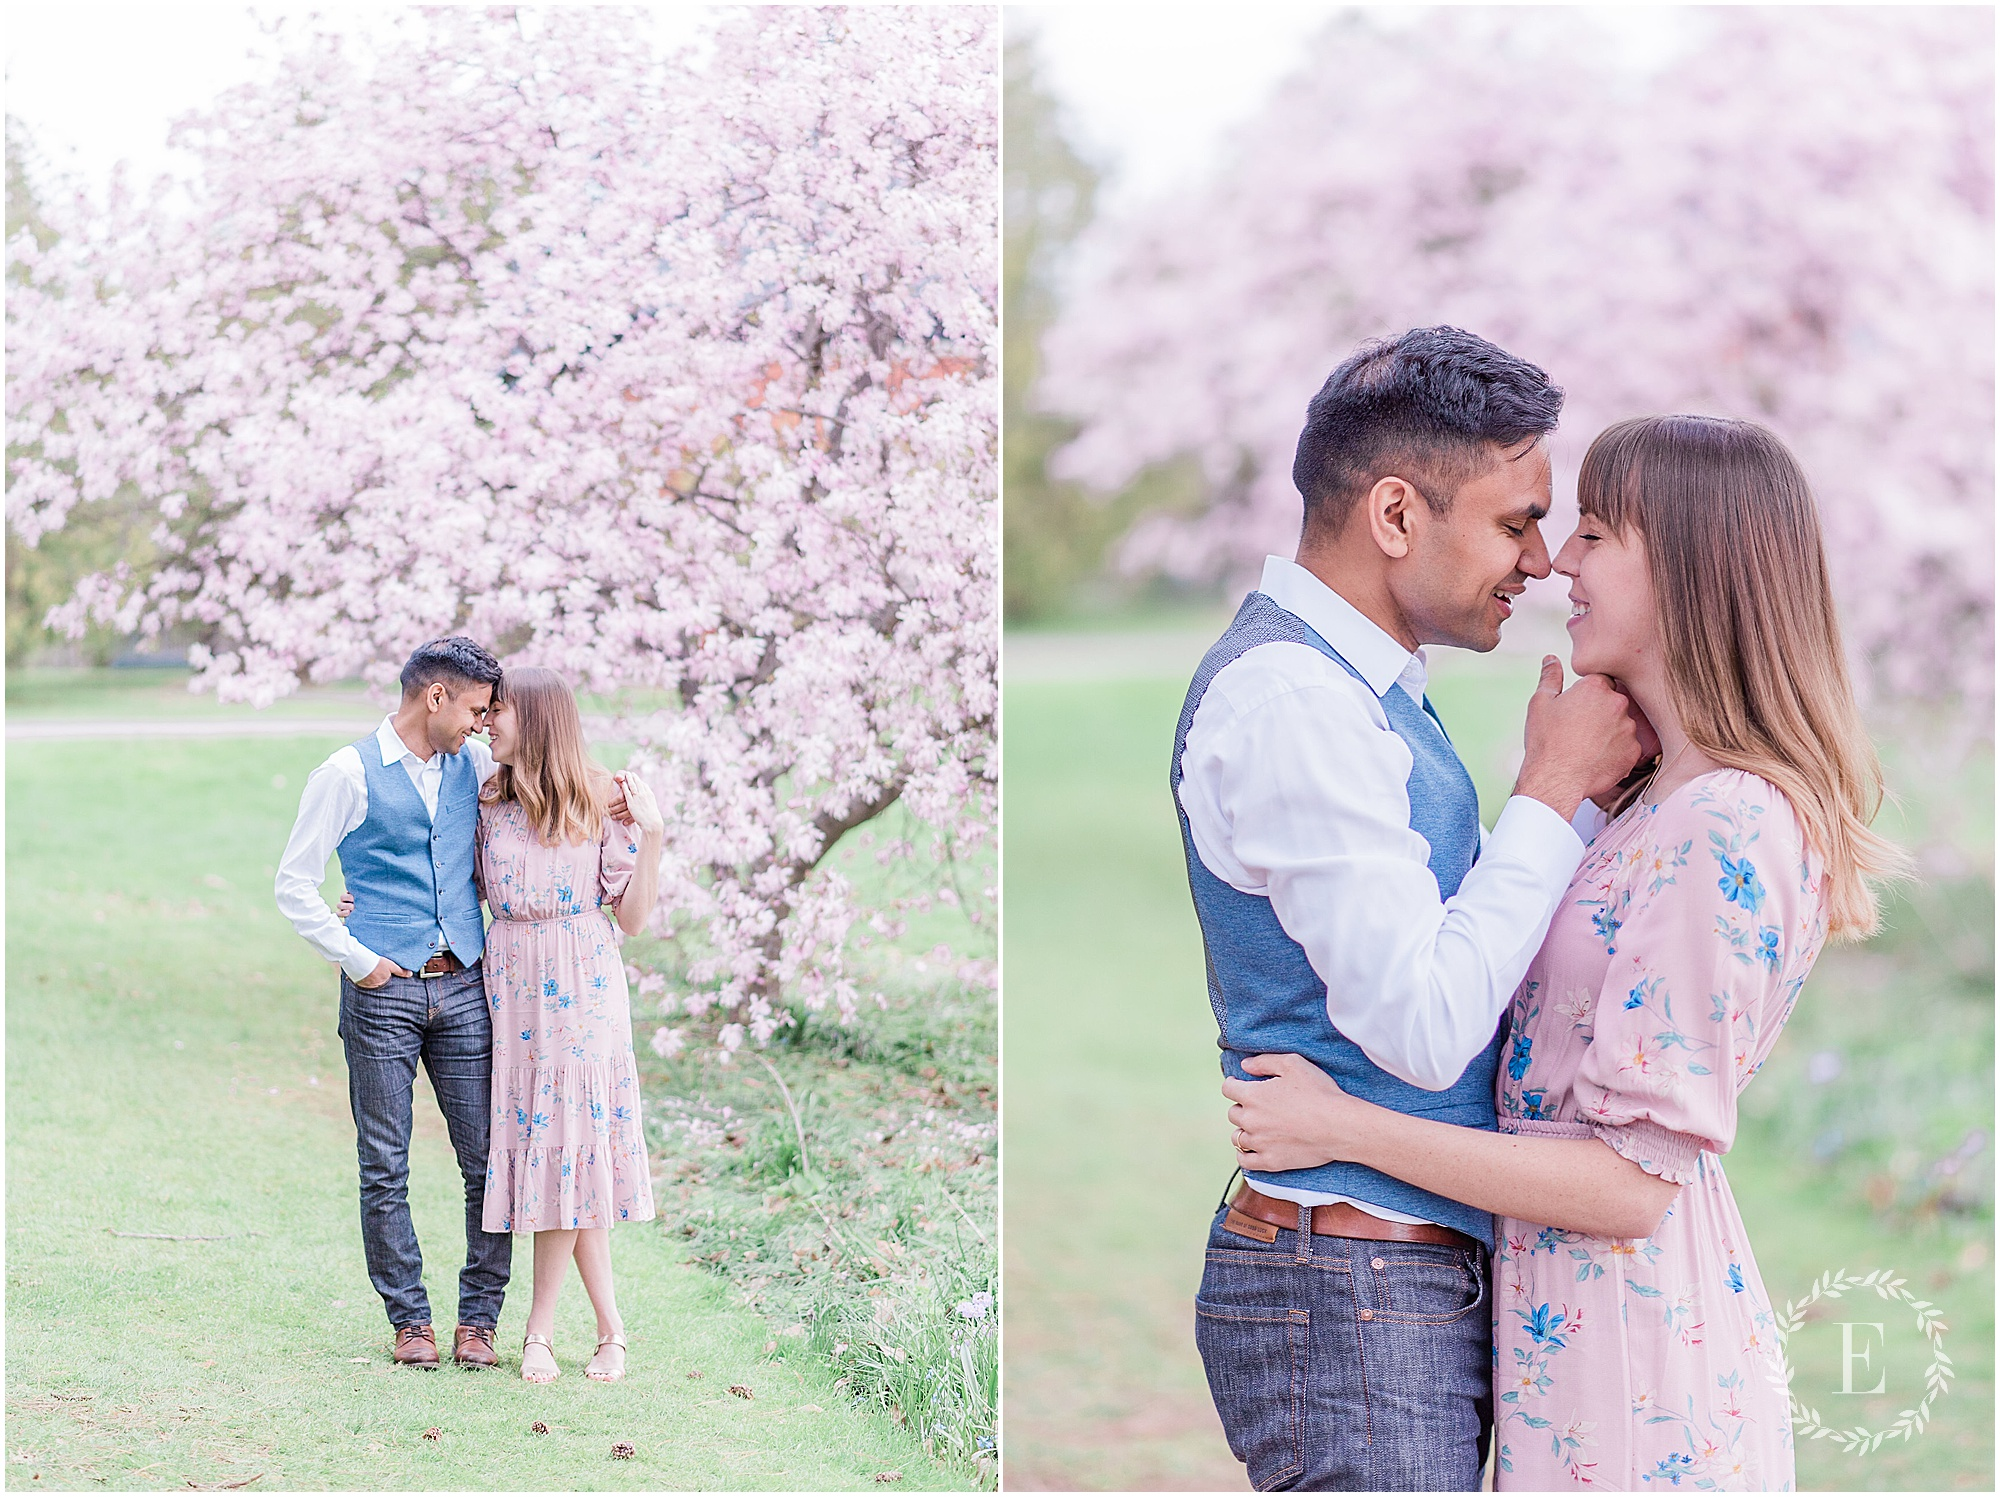 151_Cait_and_Saaqib_Engagement_at_the_Museum_of_Nature_and_Ornamental_Gardens___Photography_by_Emma.jpg